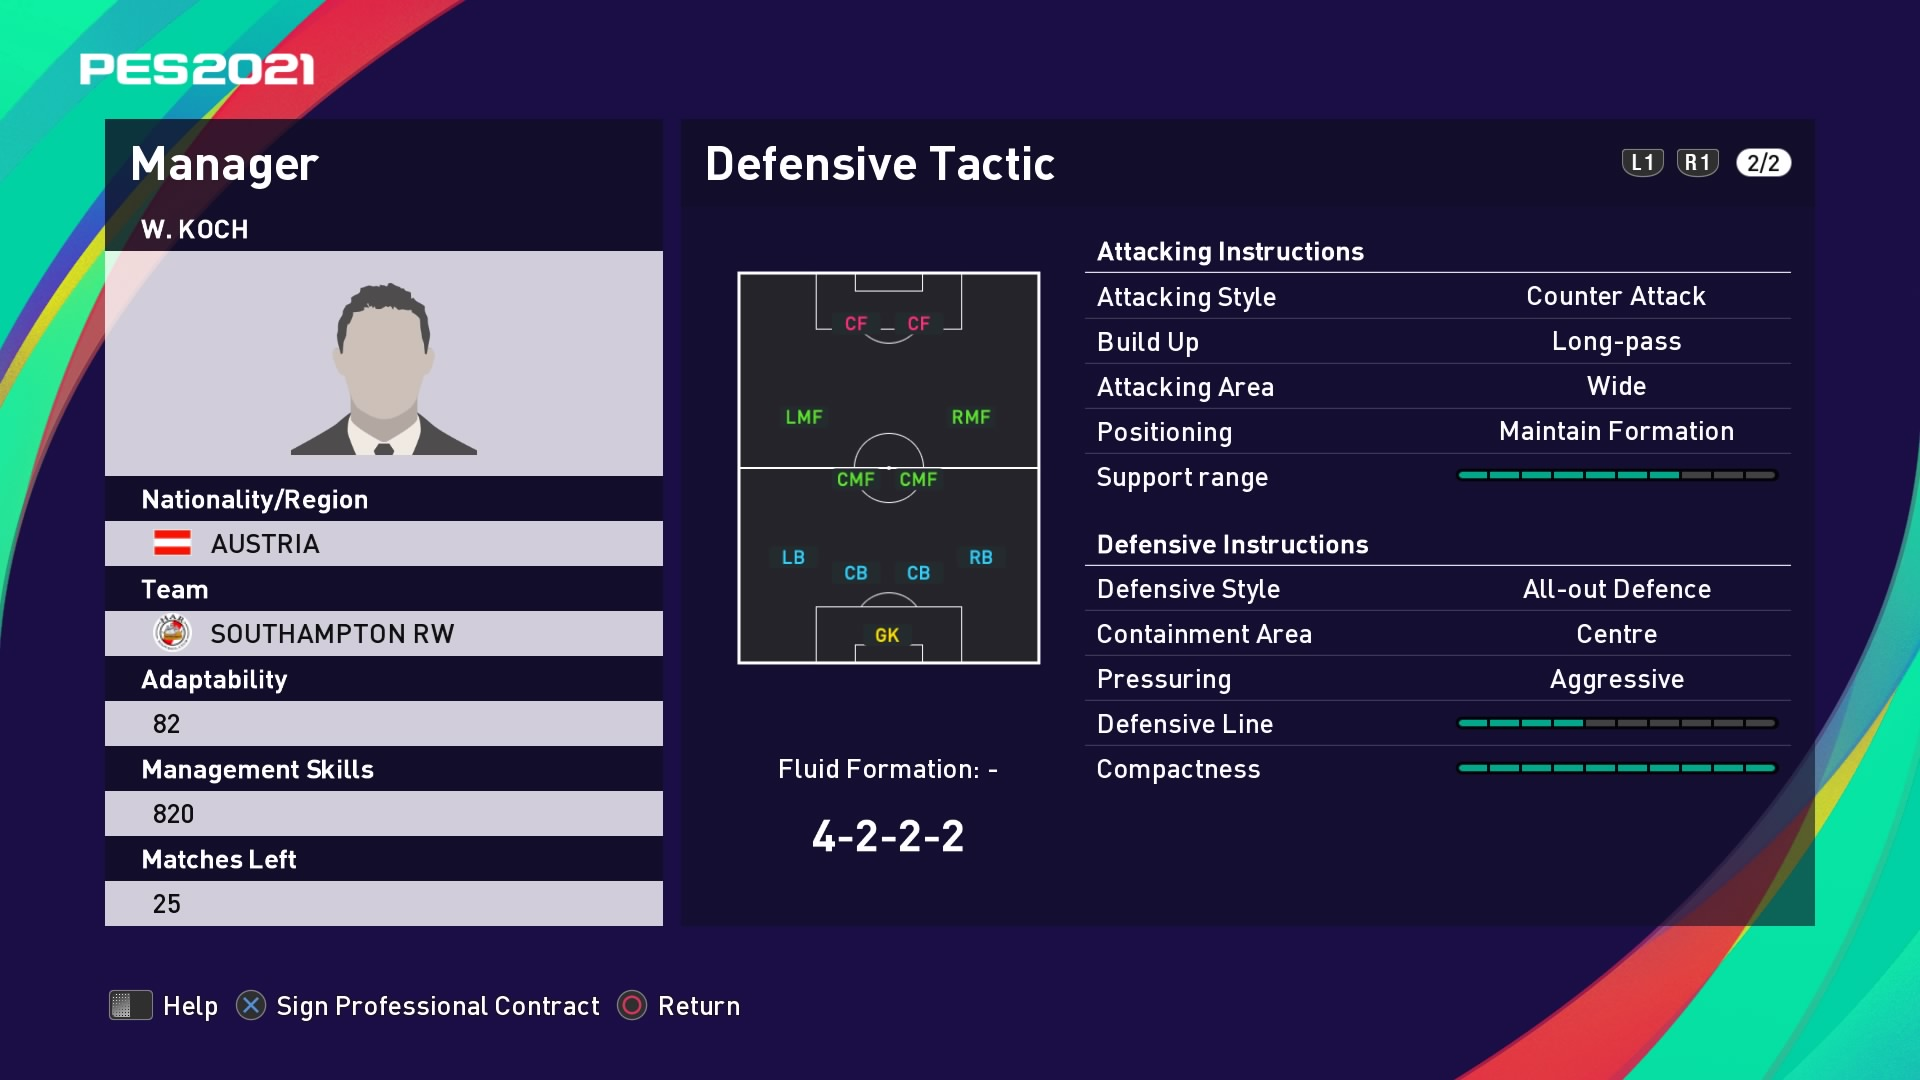 W. Koch (Ralph Hasenhüttl) Defensive Tactic in PES 2021 myClub